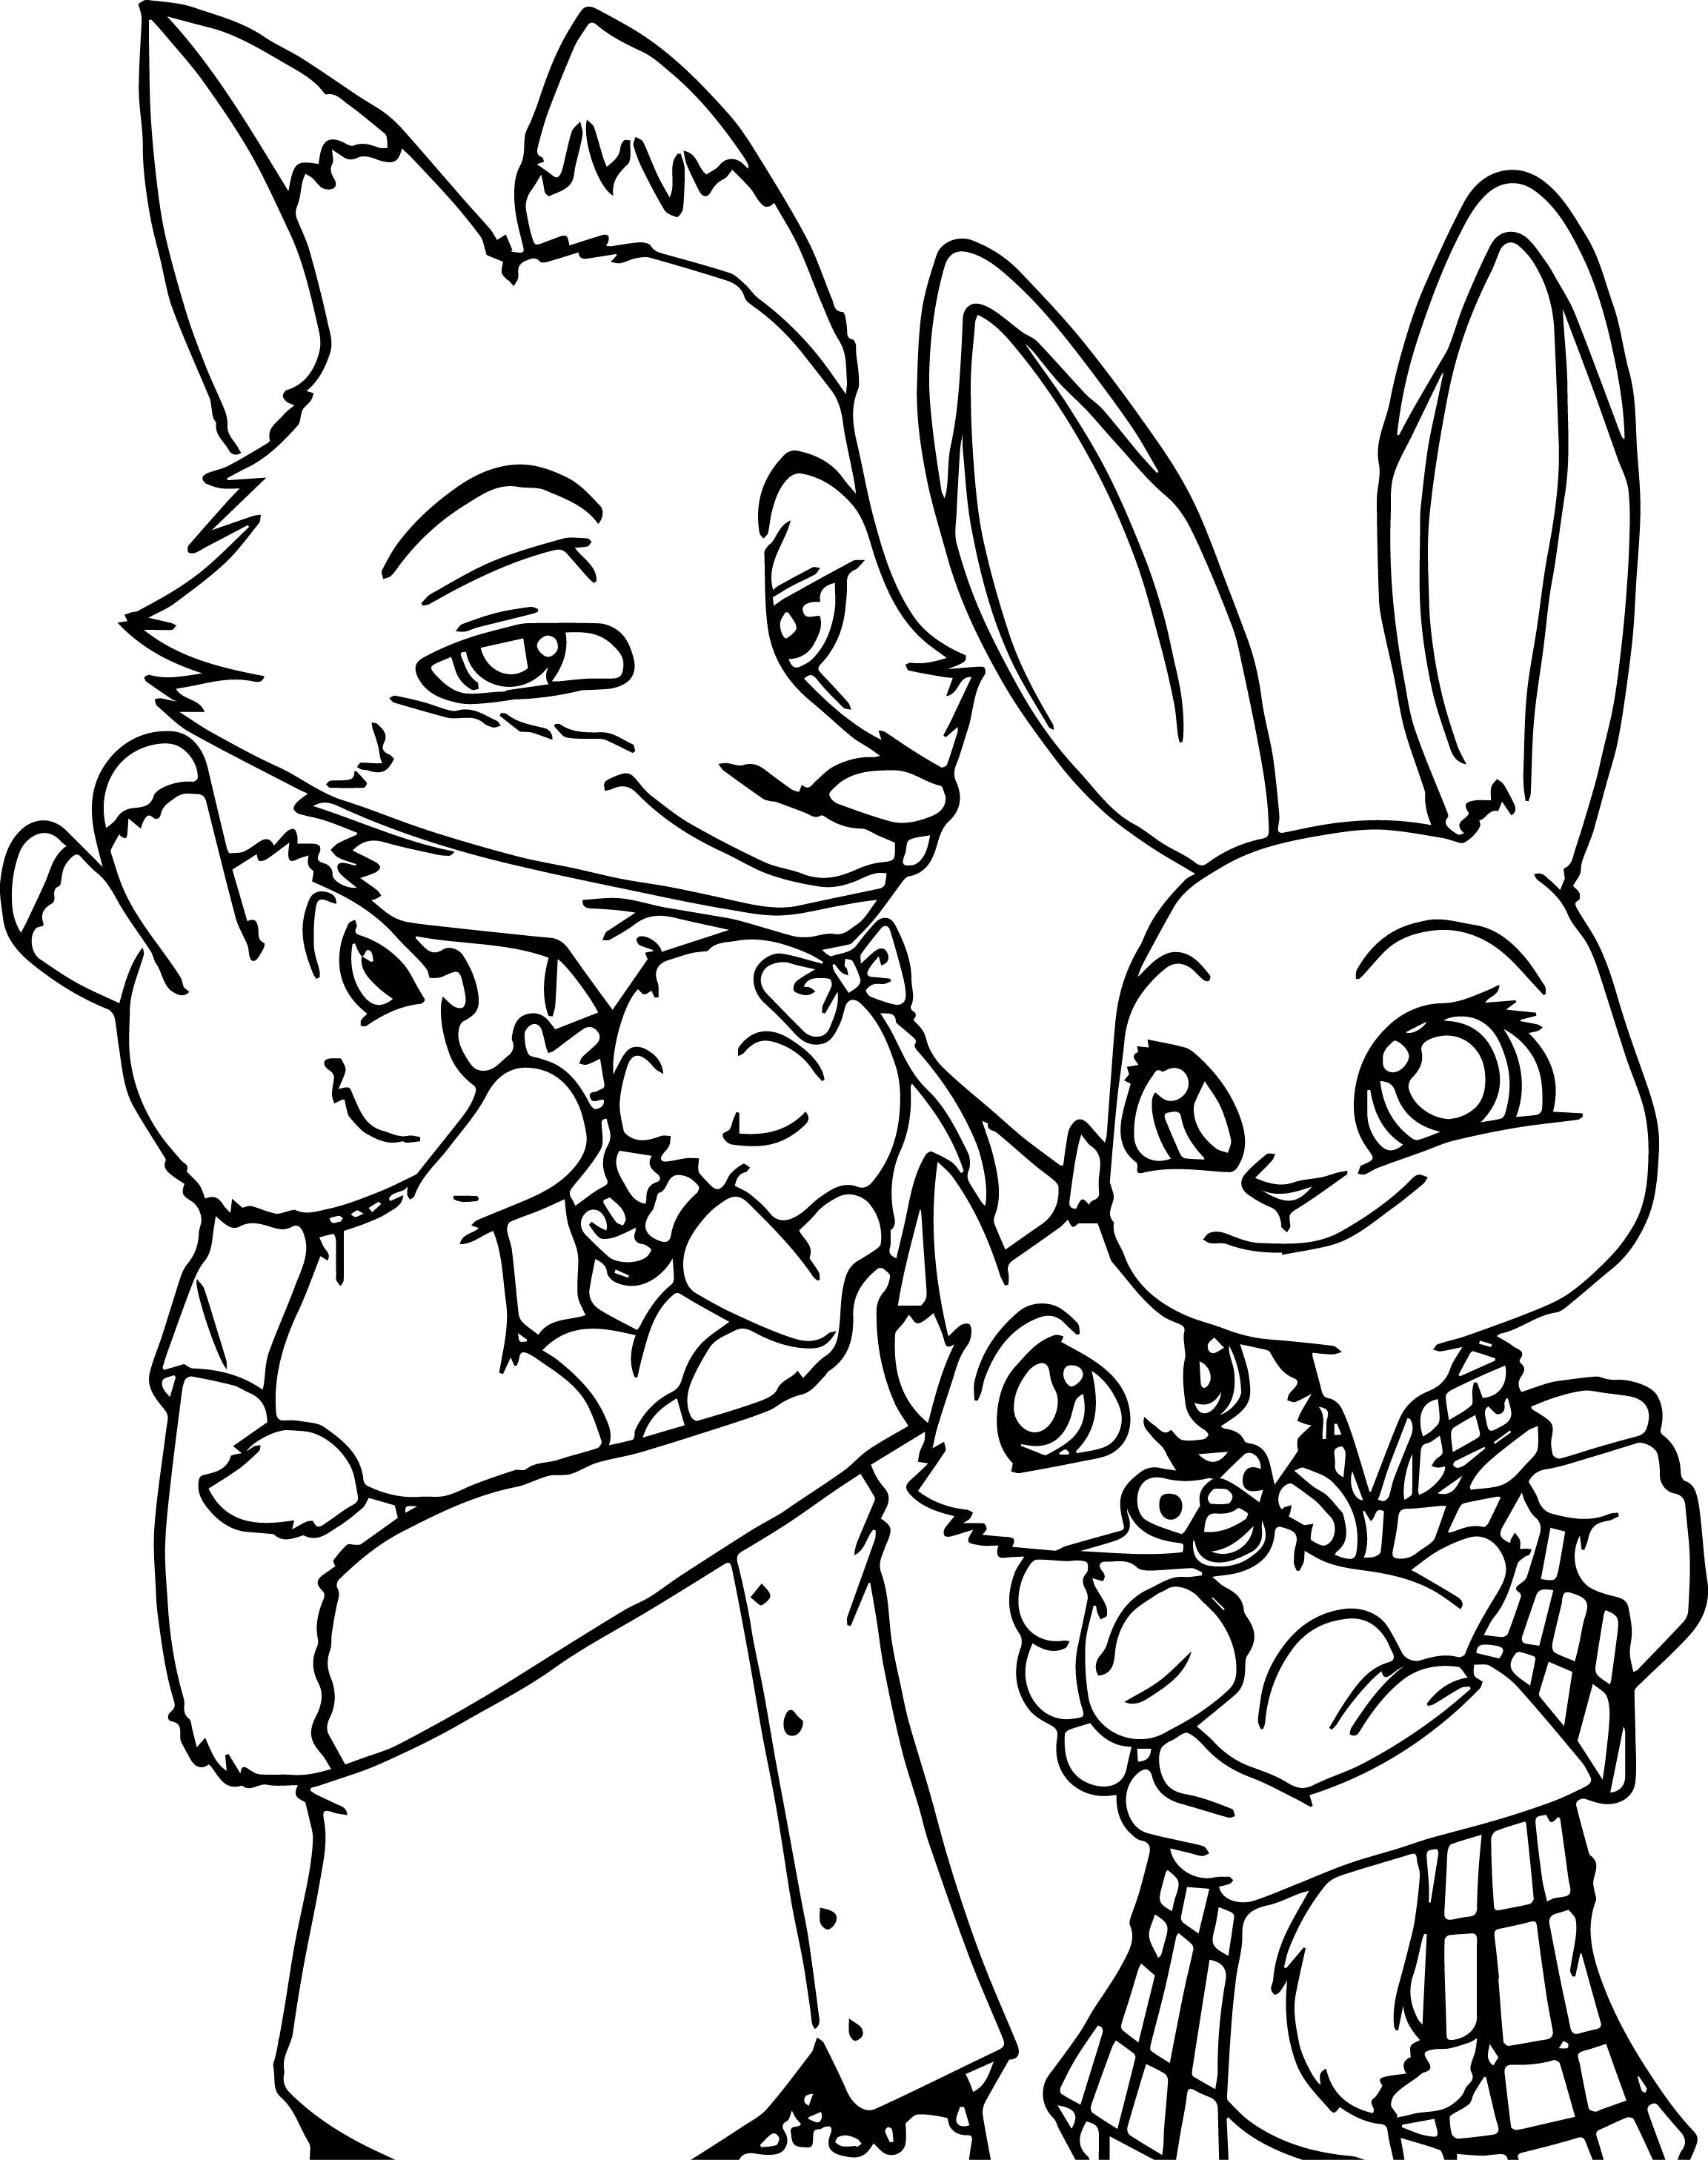 Zootopia Bunny And Fox Family Coloring Page Family Coloring Pages Fox Coloring Page Zootopia Coloring Pages